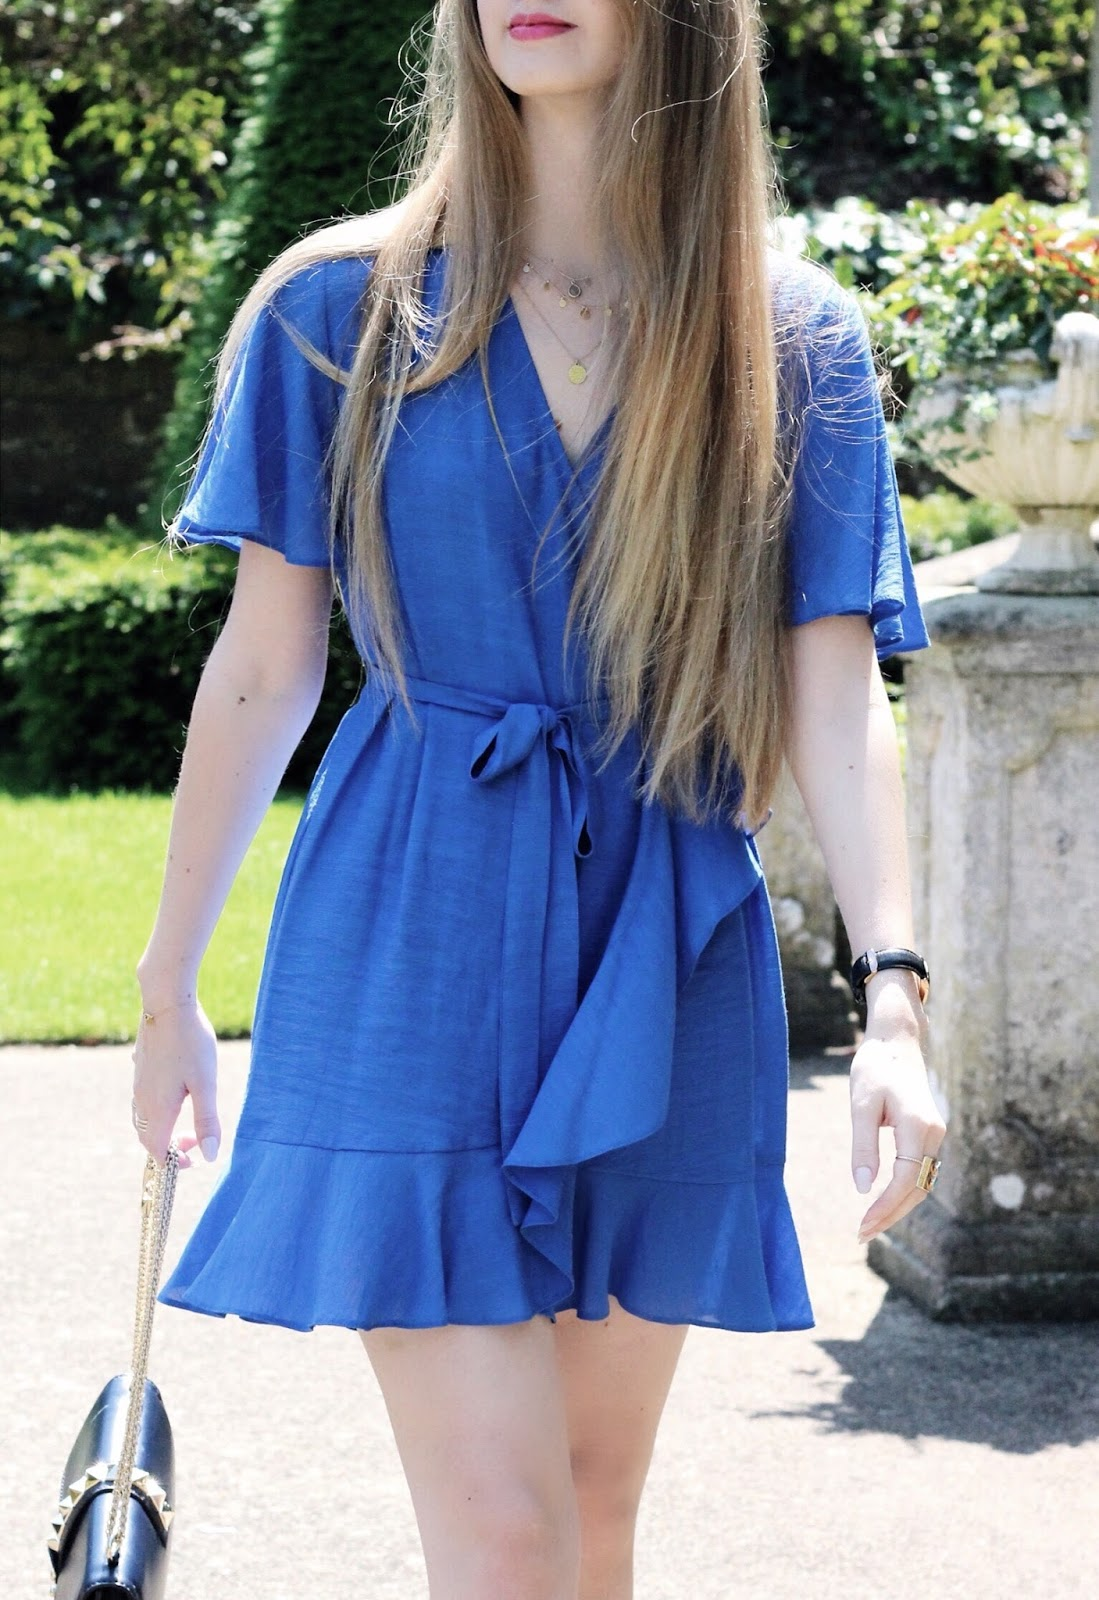 Topshop Summer Mini Wrap Dress